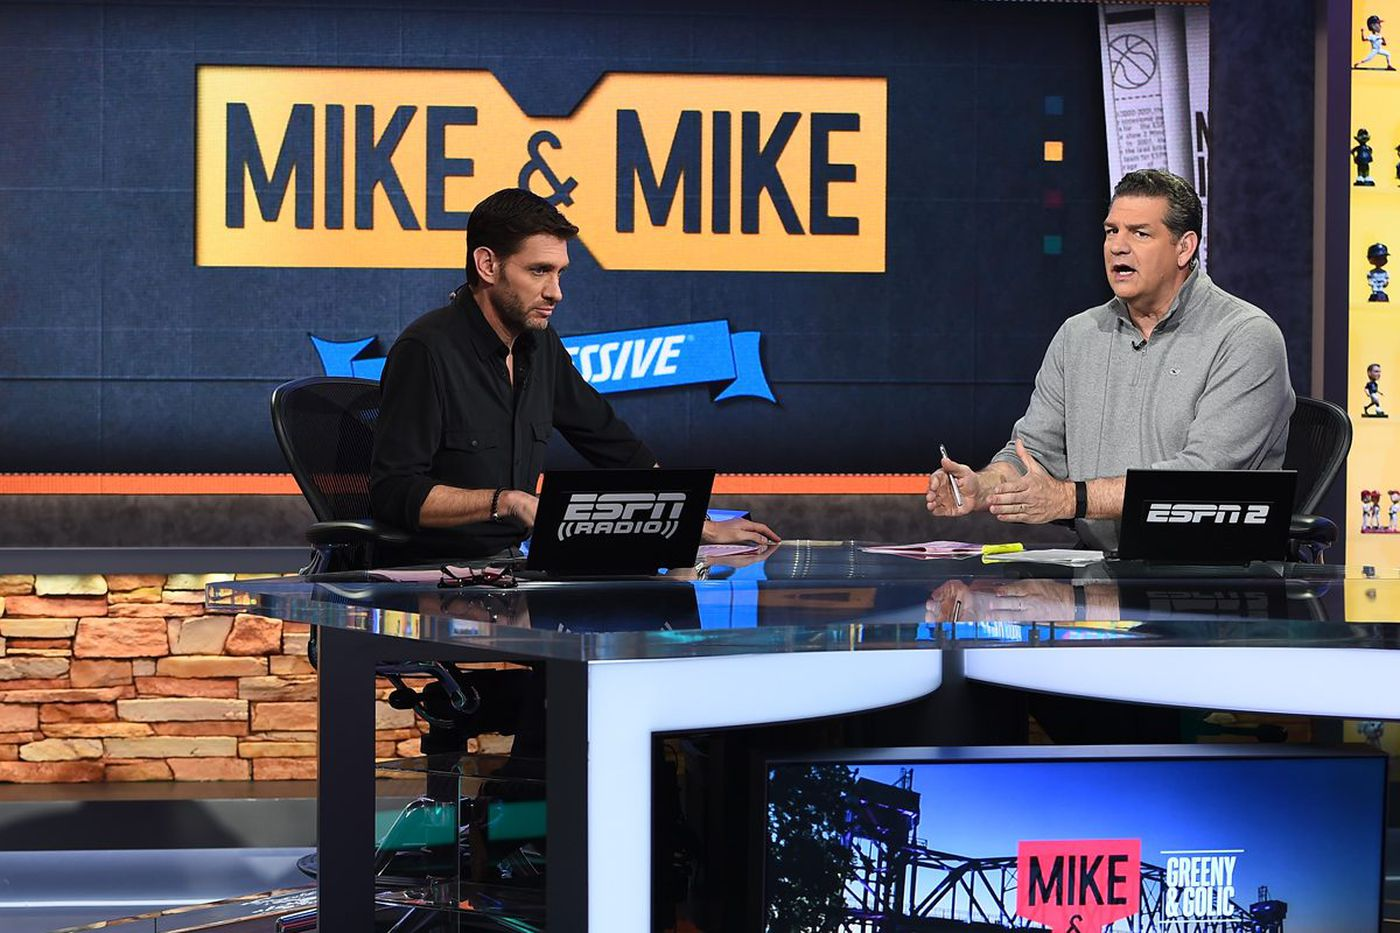 'Mike & Mike' to be replaced by 'Golic & Wingo' in November